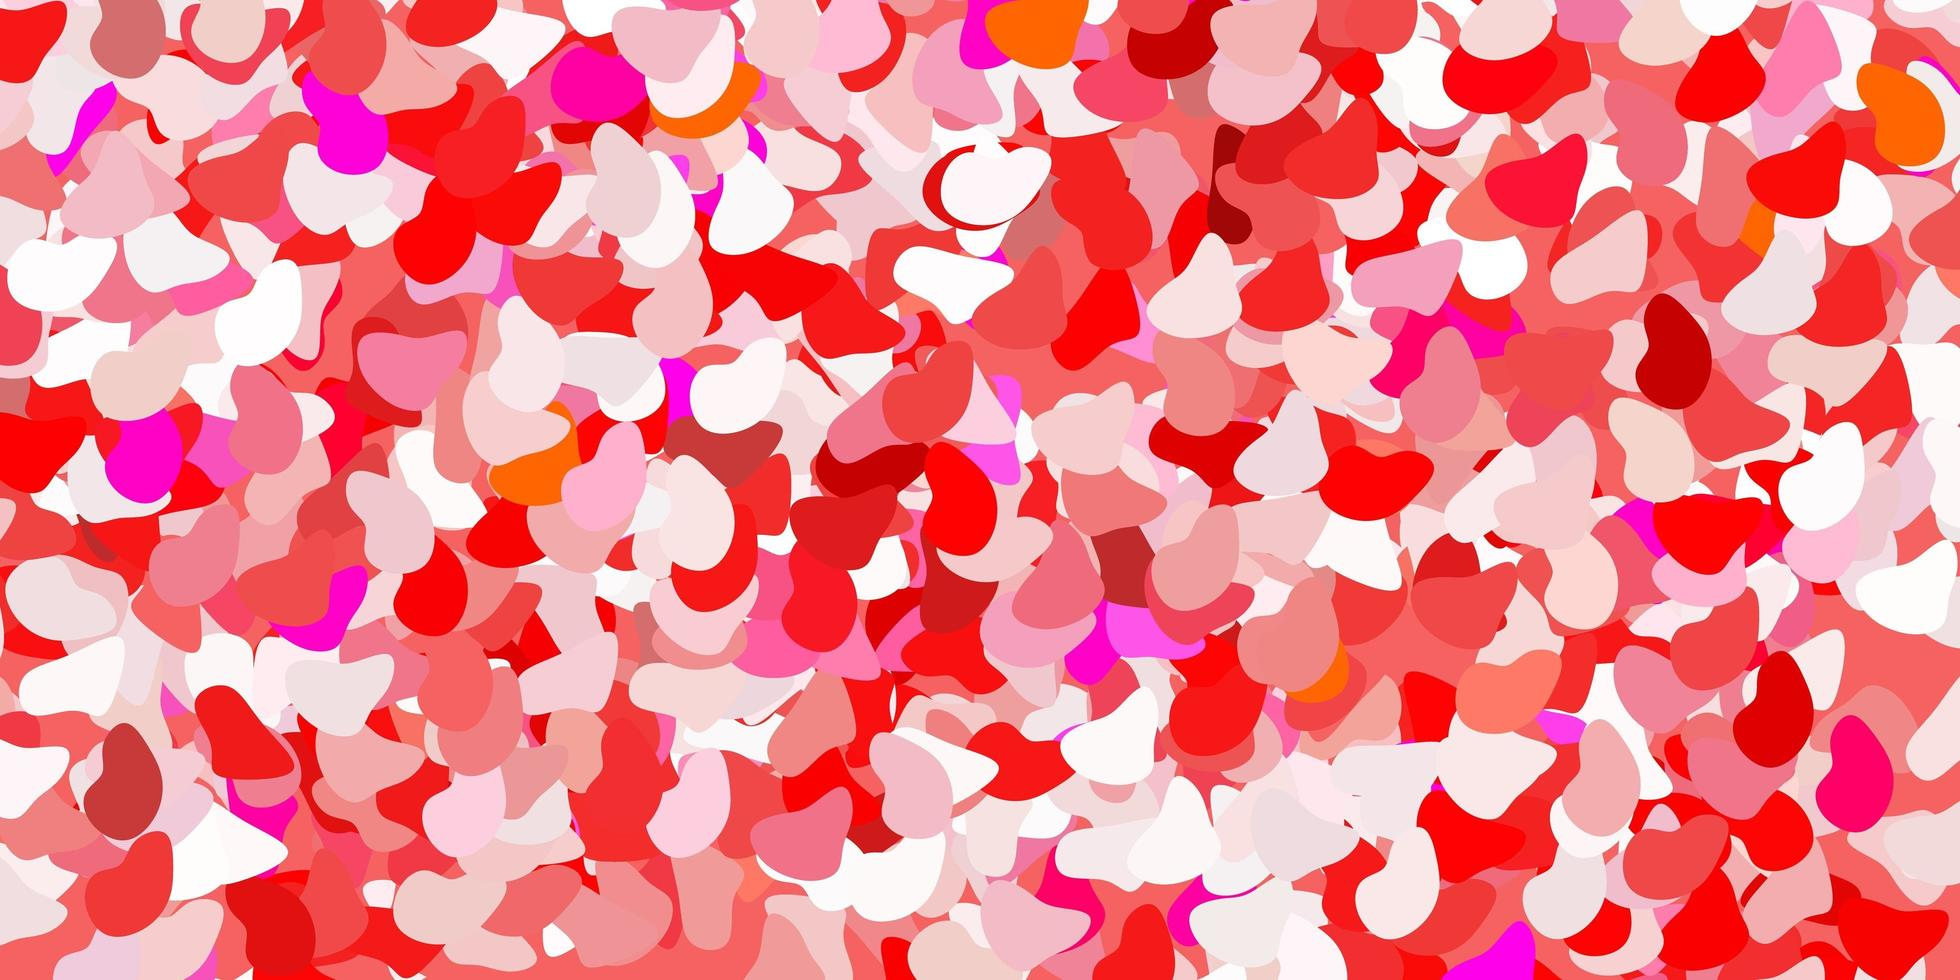 Light red pattern with abstract shapes. vector